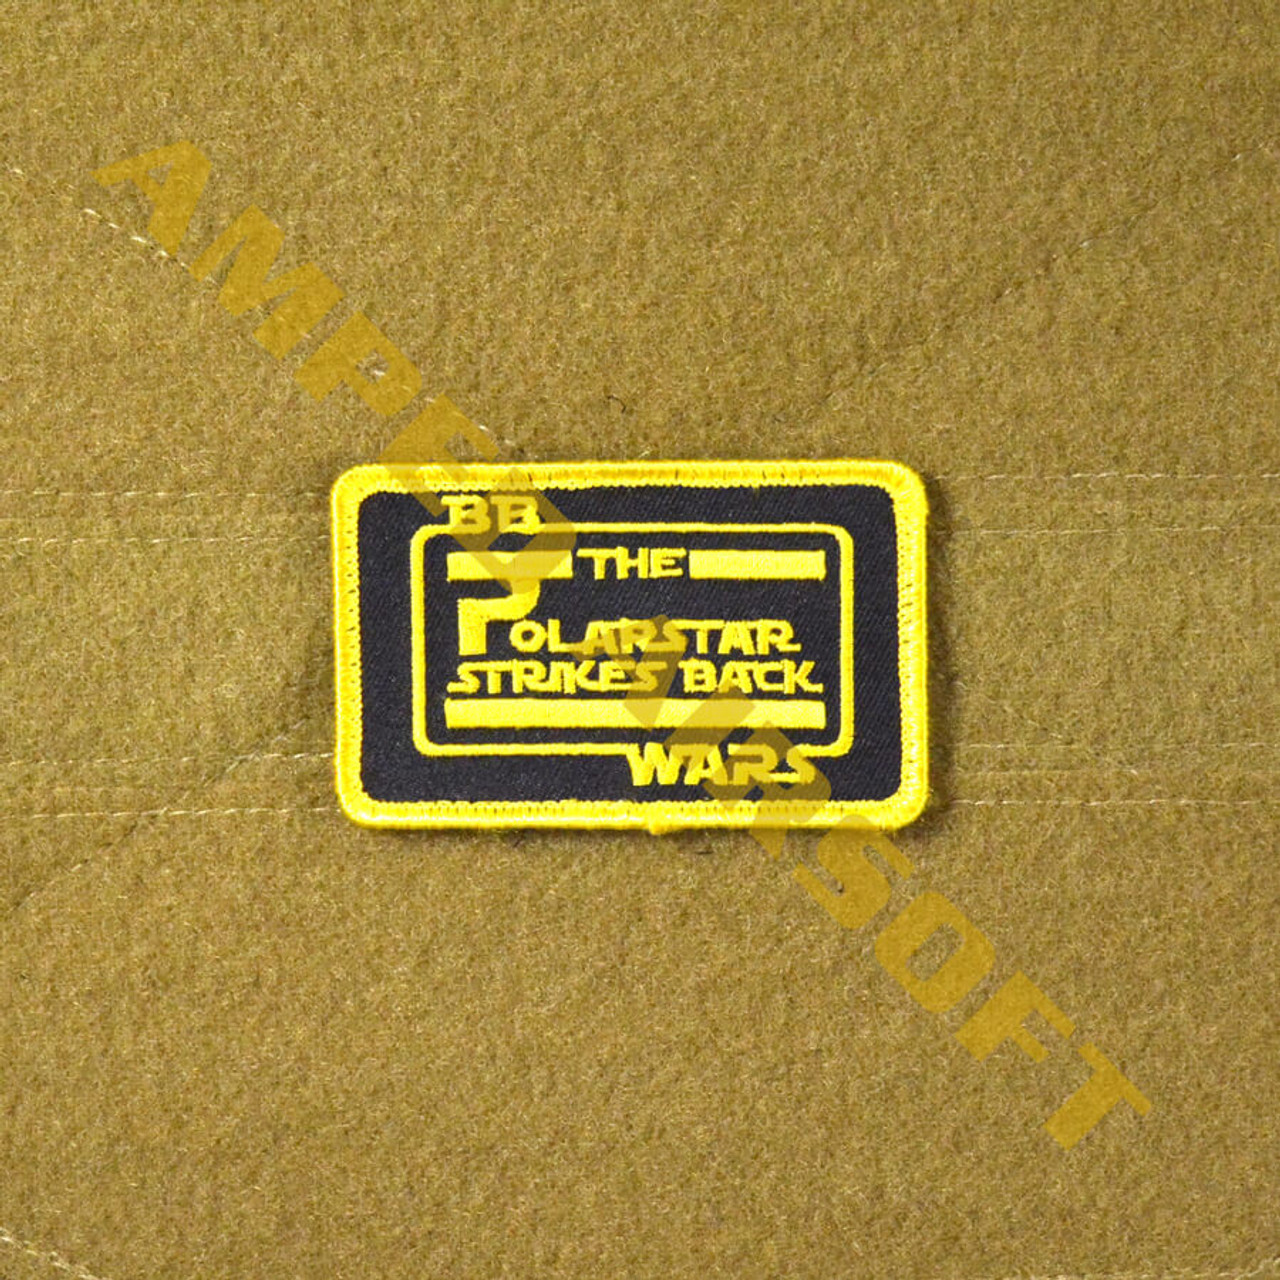 Amped Custom - BB Wars Patch - The PolarStar Strikes Back (Full Color)